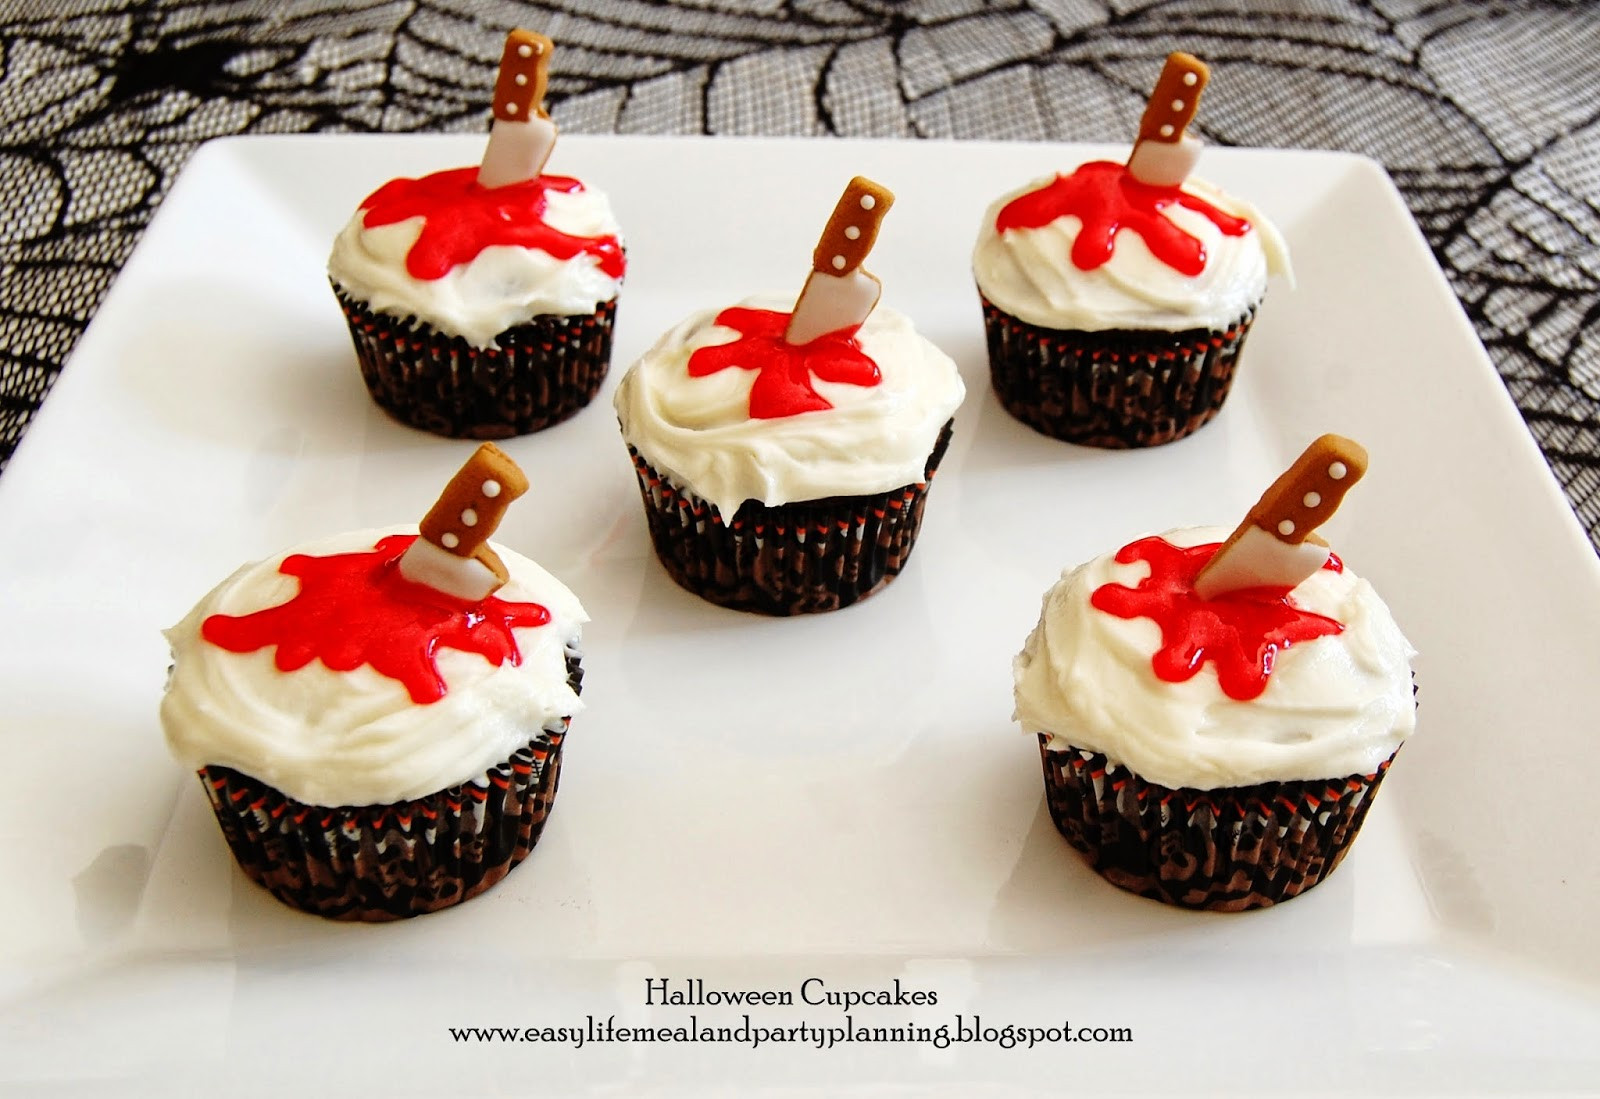 Halloween Decorating Cupcakes  Easy Life Meal and Party Planning October 2013